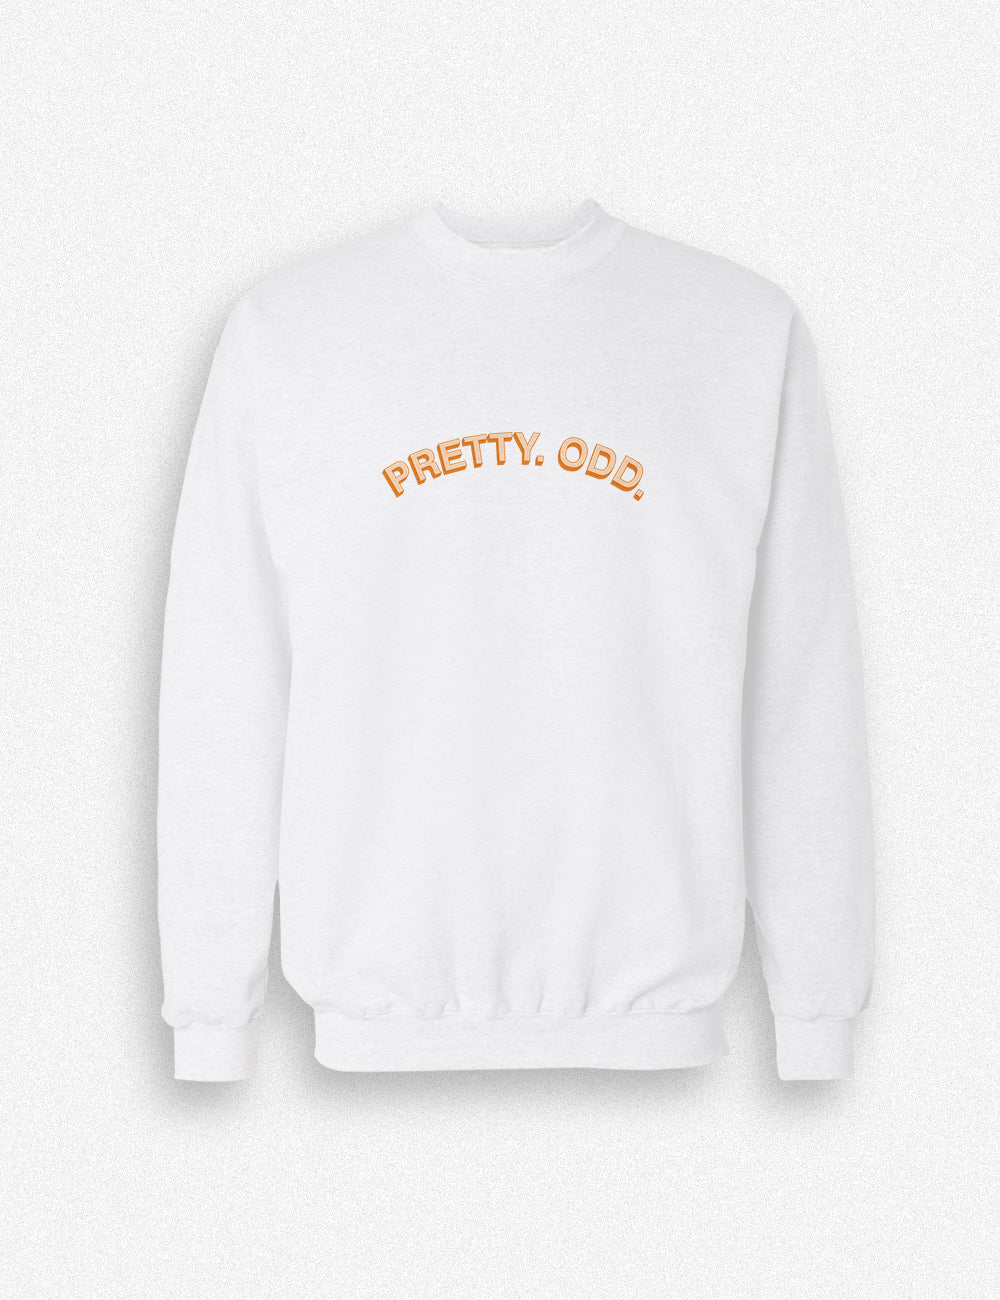 Hipland Pretty Odd logo unisex sweater in black, white